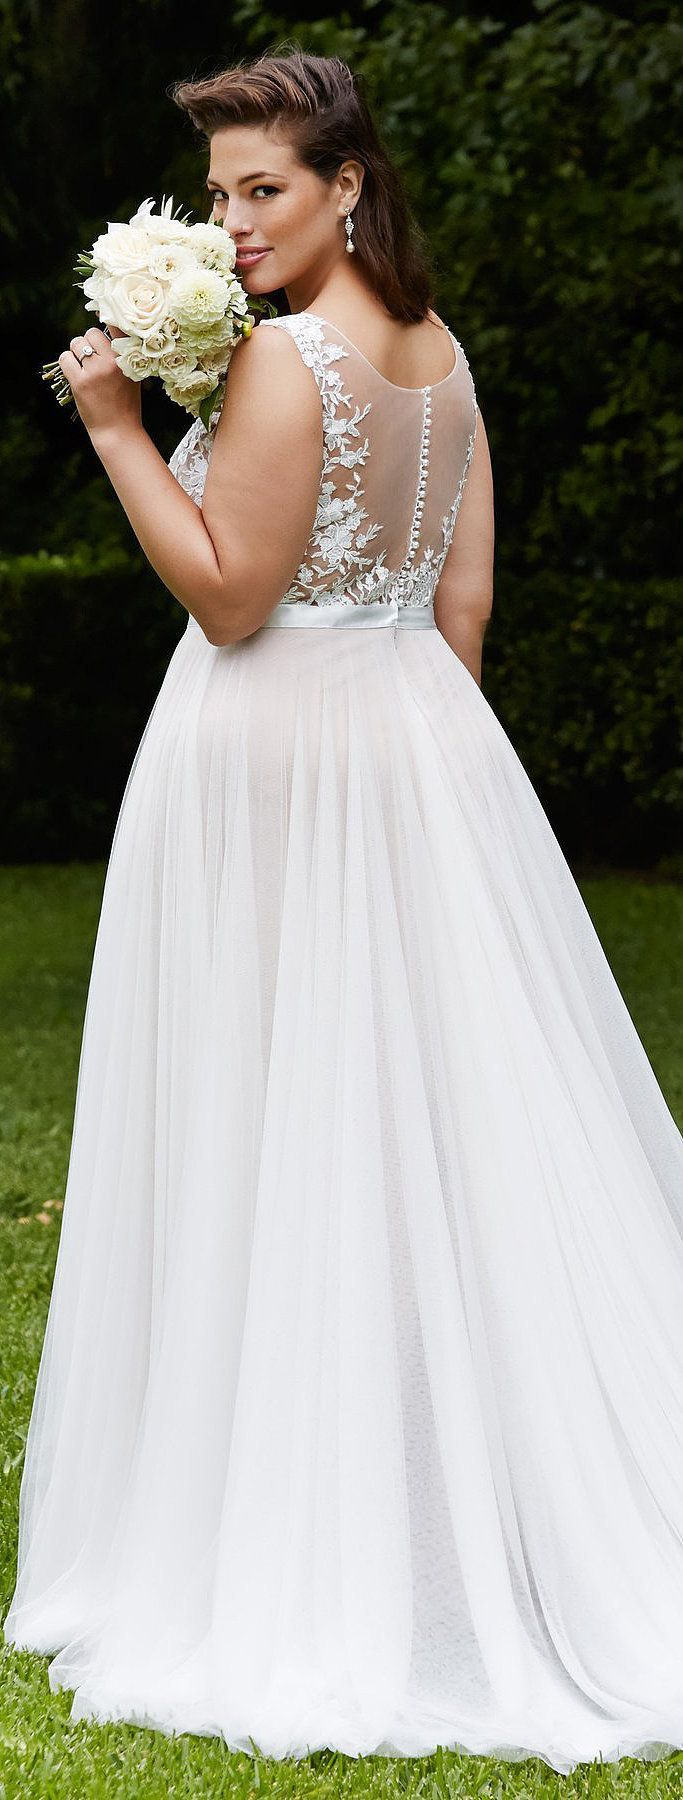 20 Lovely (and Affordable!) Wedding Dresses For Ladies With Curves ...